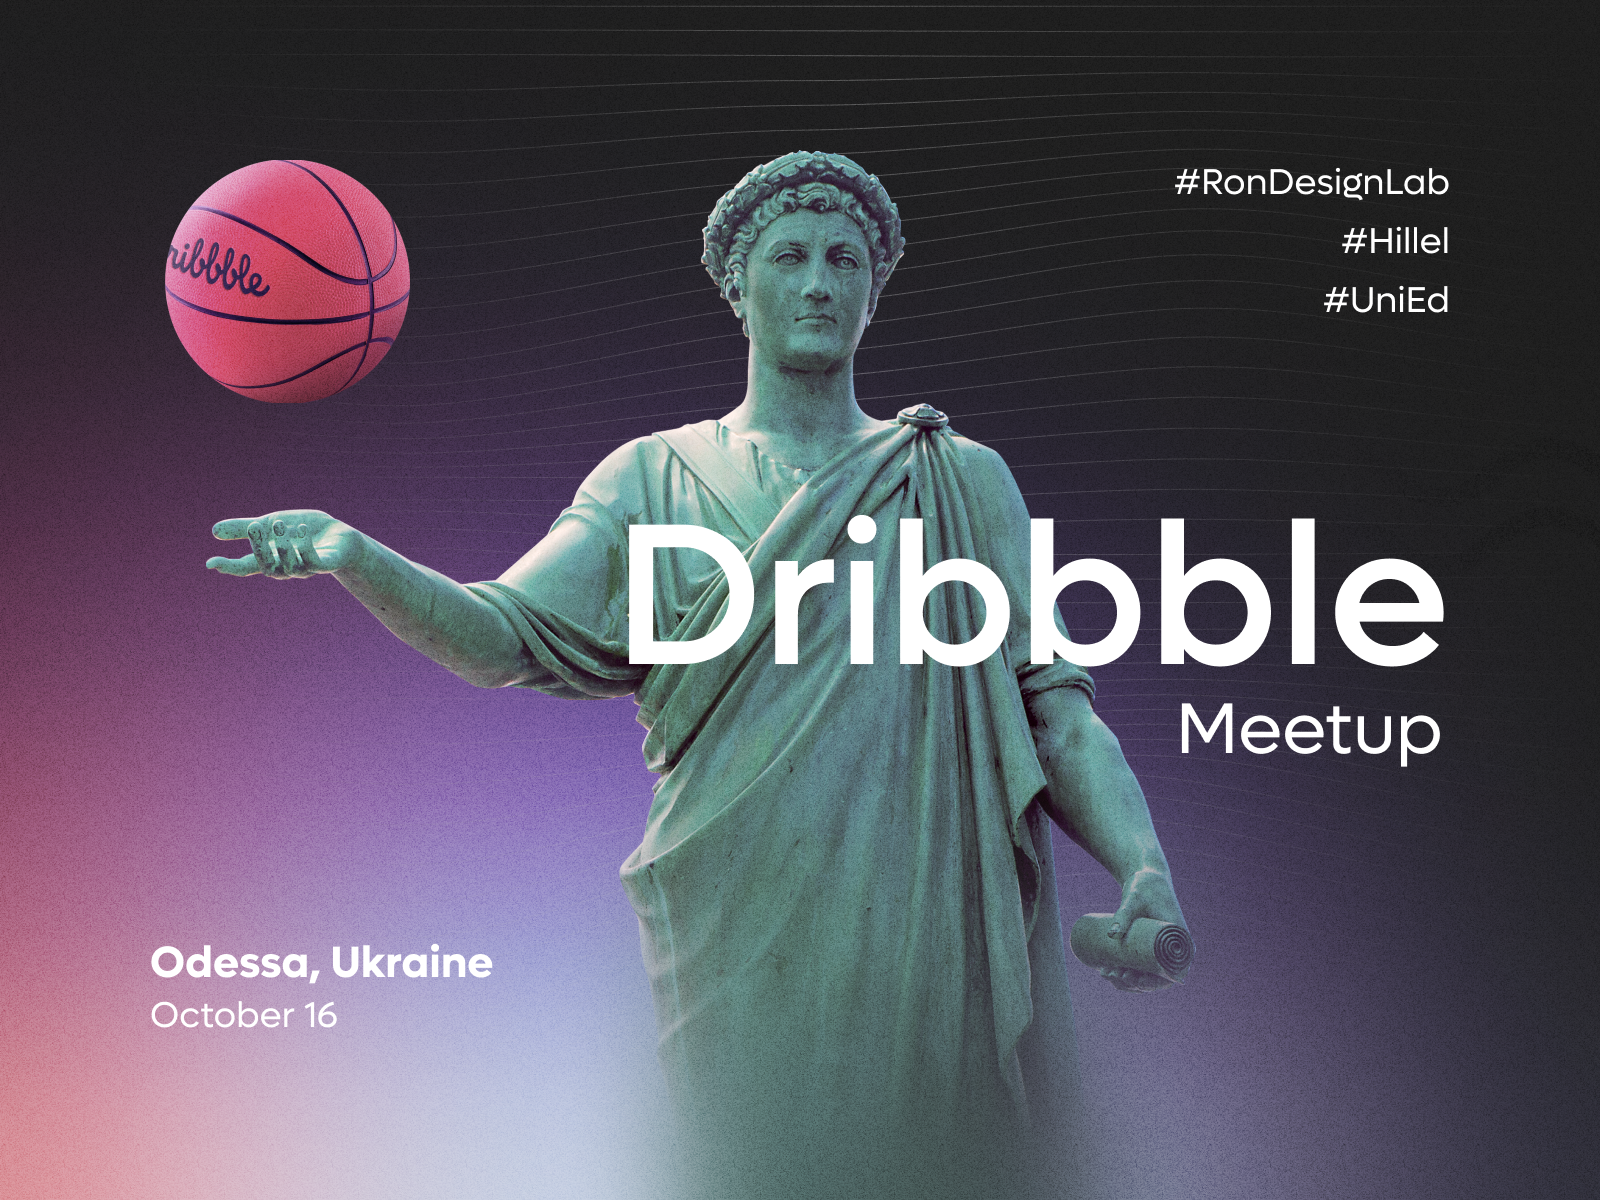 Odessa Dribbble Meetup by Rondesignlab